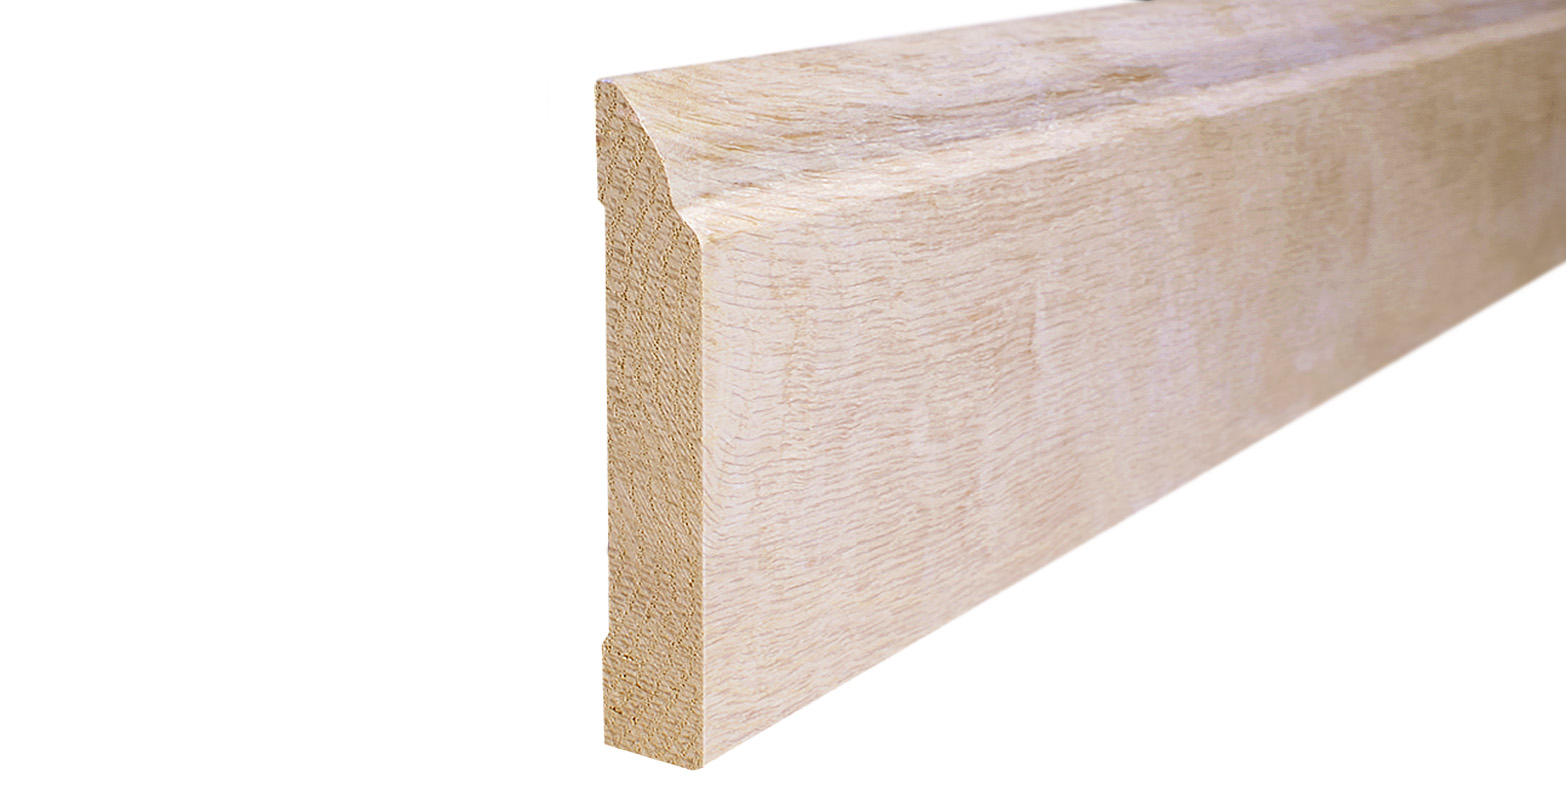 hardwood and bamboo baseboard trim specifications